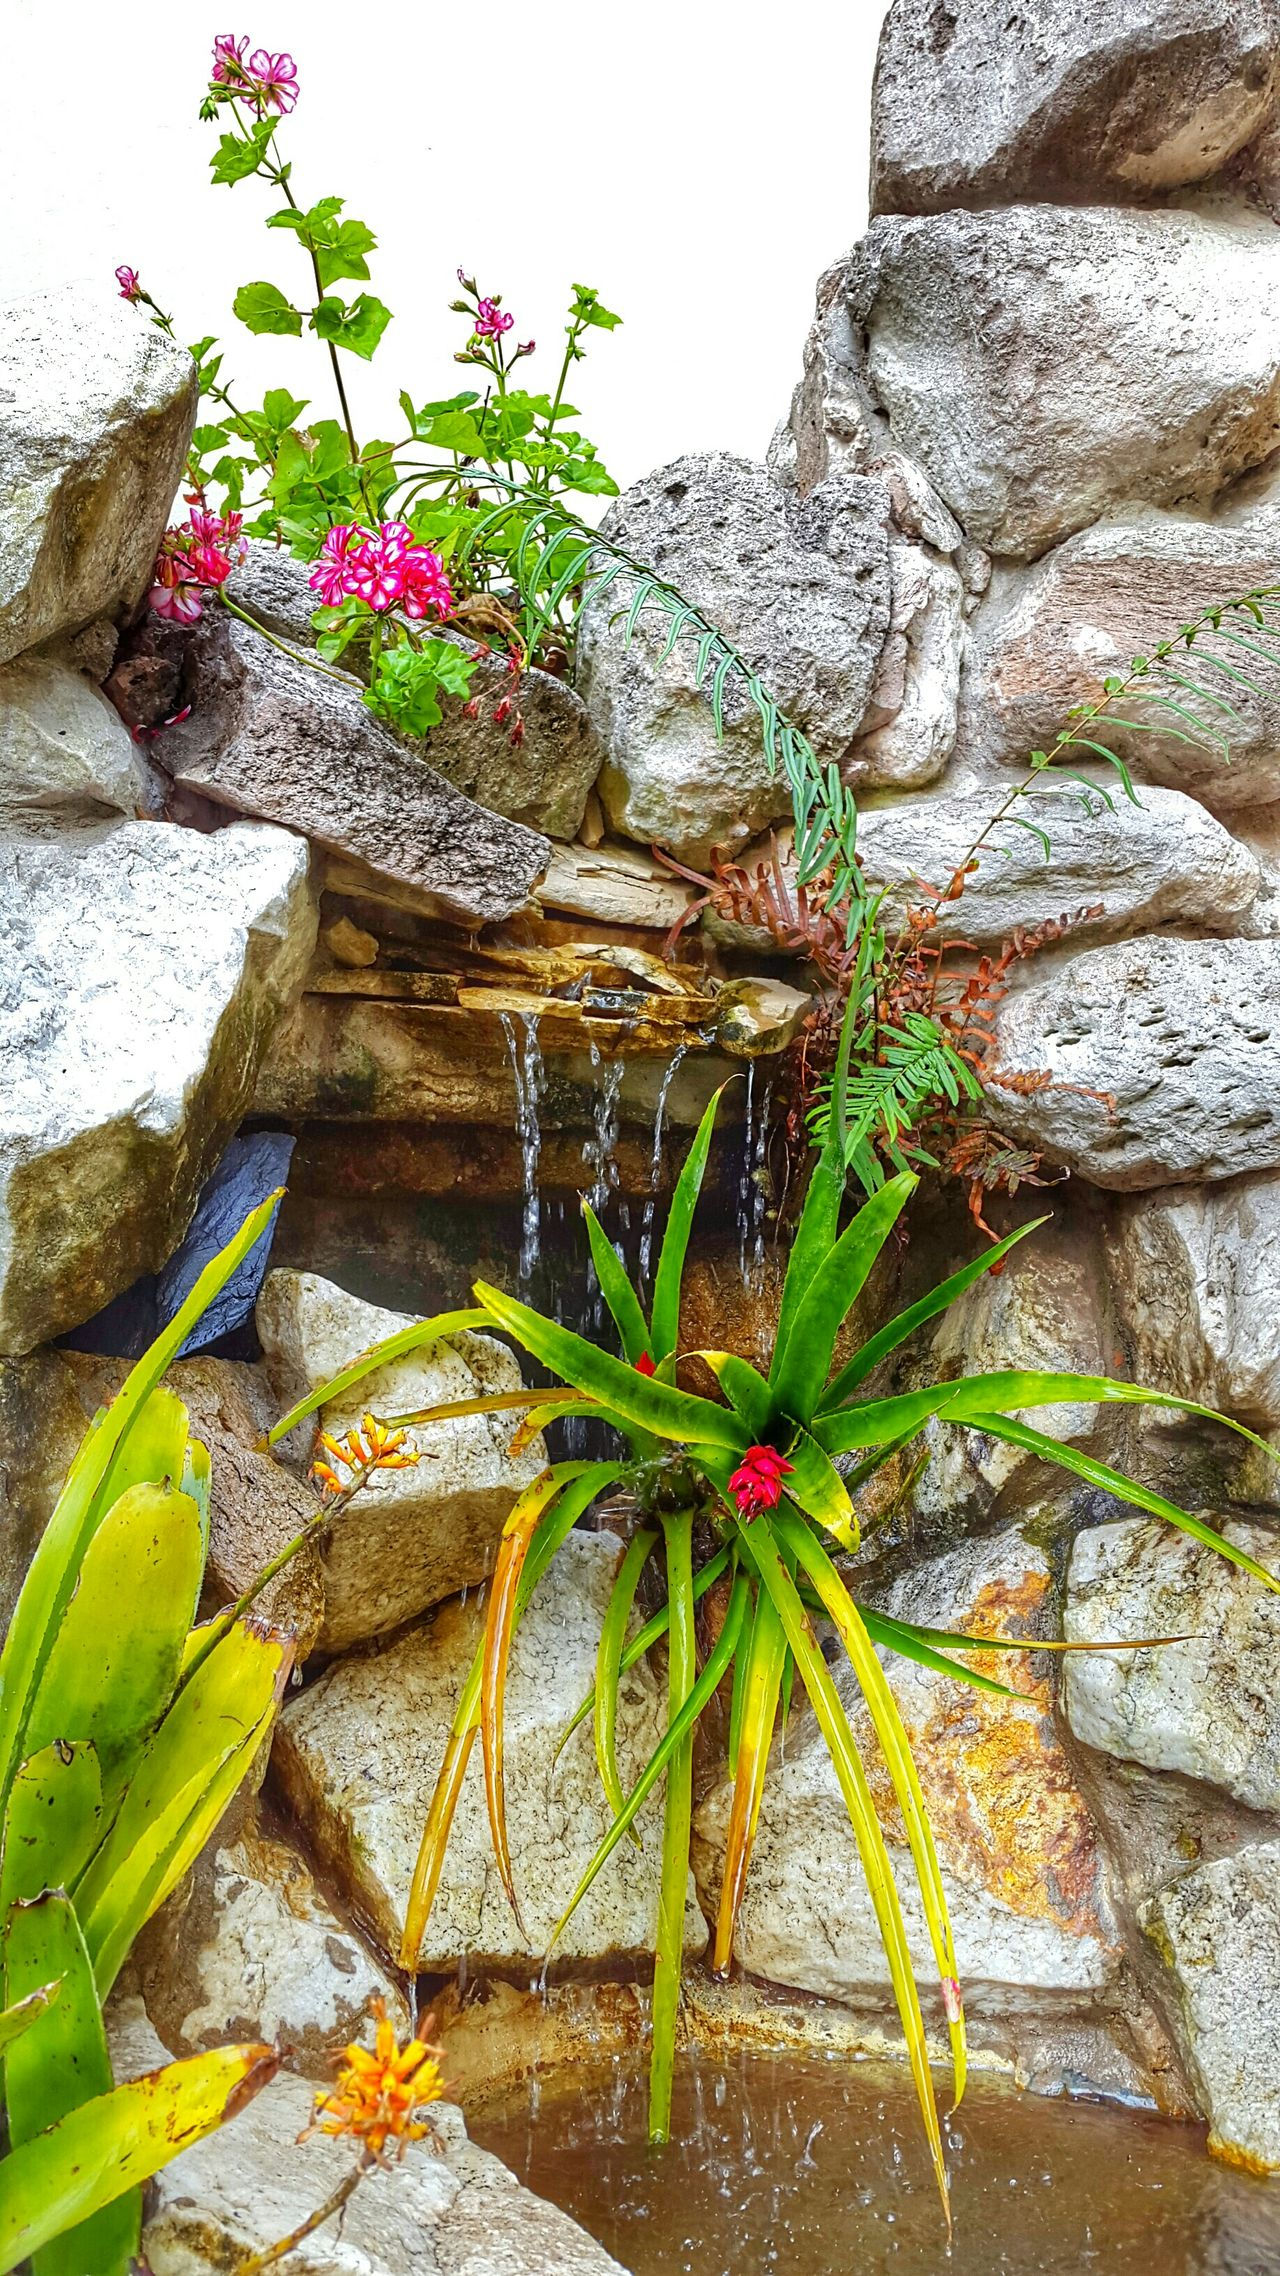 Water_collection Piedras Agua Fuente Fuente❤Agua 🌷 Flowers 🌹 Flowers, Nature And Beauty EyeEm Best Shots - Flowers Spring Flowers Flowers,Plants & Garden